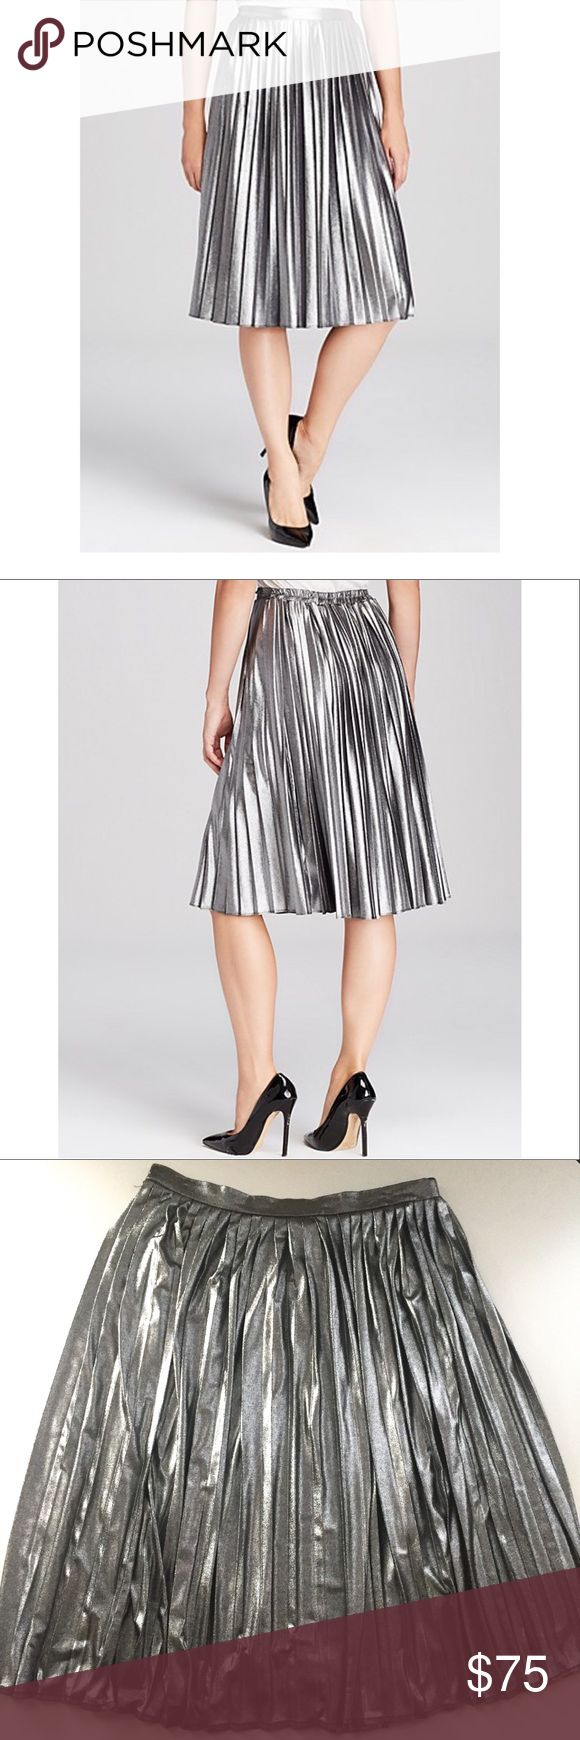 AQUA (Bloomingdale's Private Label) Midi Skirt Tap the metallic trend and rock the silhouette of the season in AQUA's pleated midi skirt. * Elasticized waist, pull on styling, pleated * Polyester * Dry clean * Made in USA Aqua Skirts Midi